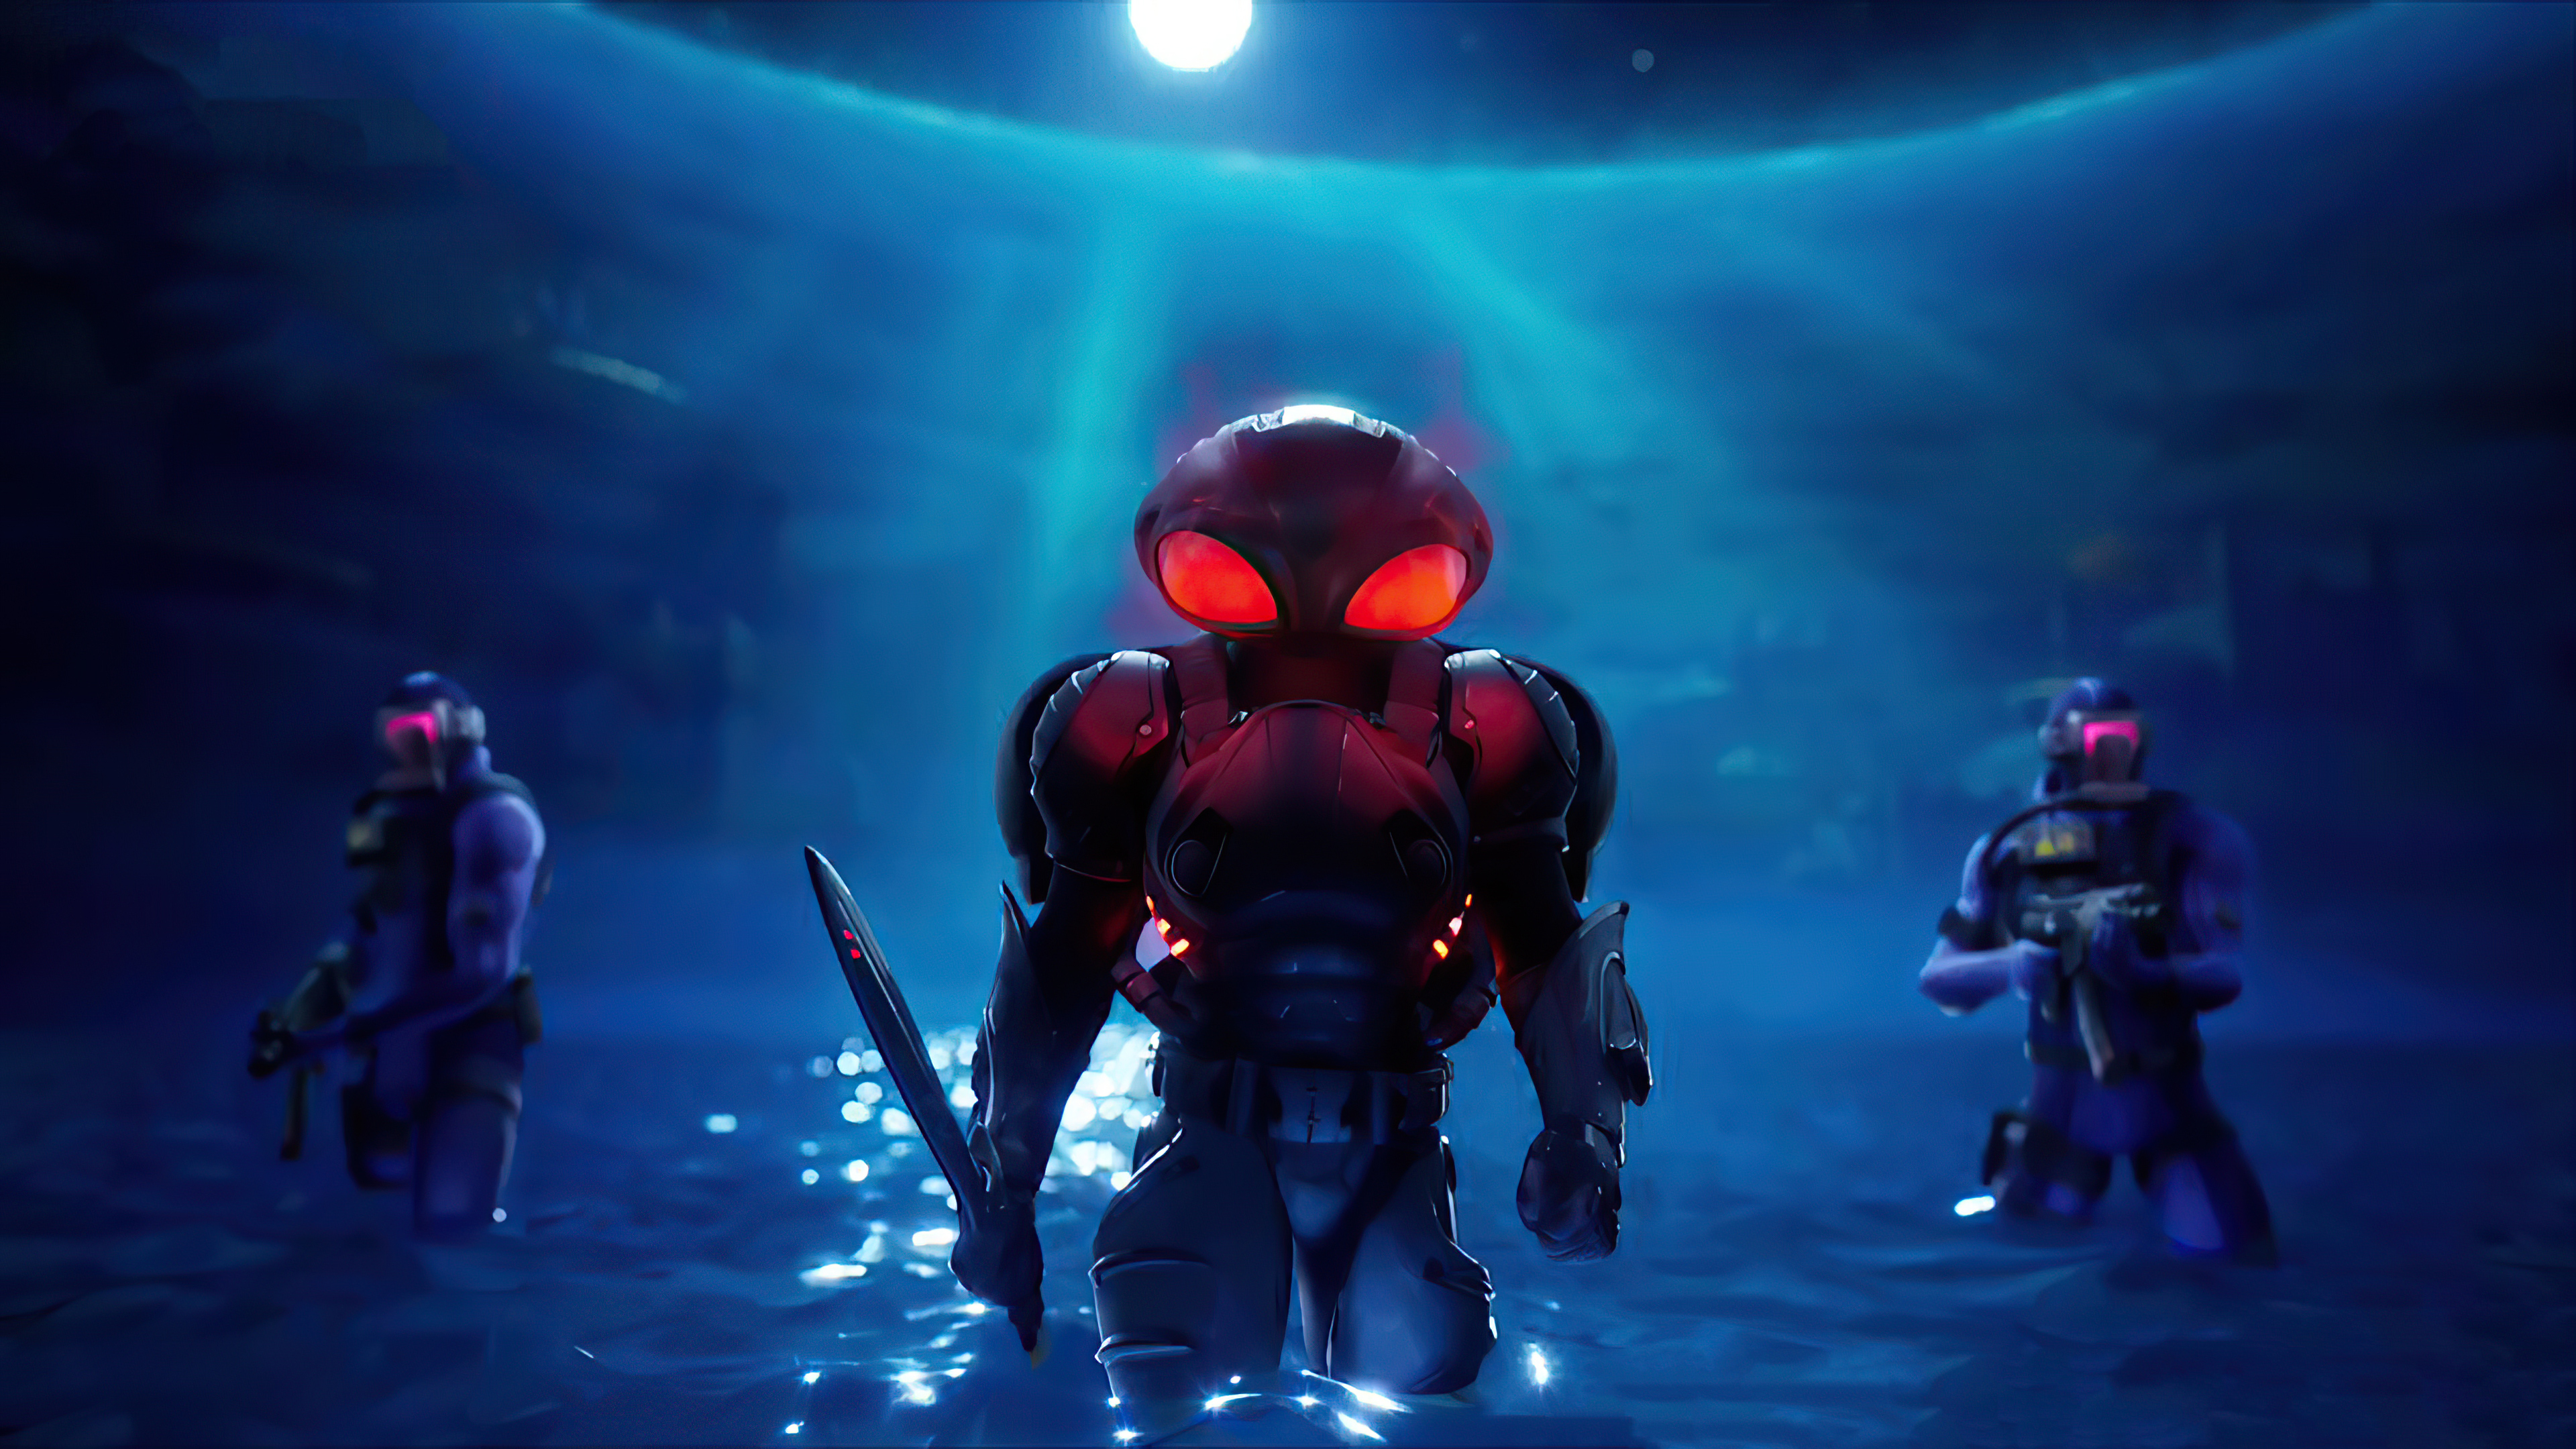 1920x1080 Black Manta Fortnite Laptop Full Hd 1080p Hd 4k Wallpapers Images Backgrounds Photos And Pictures